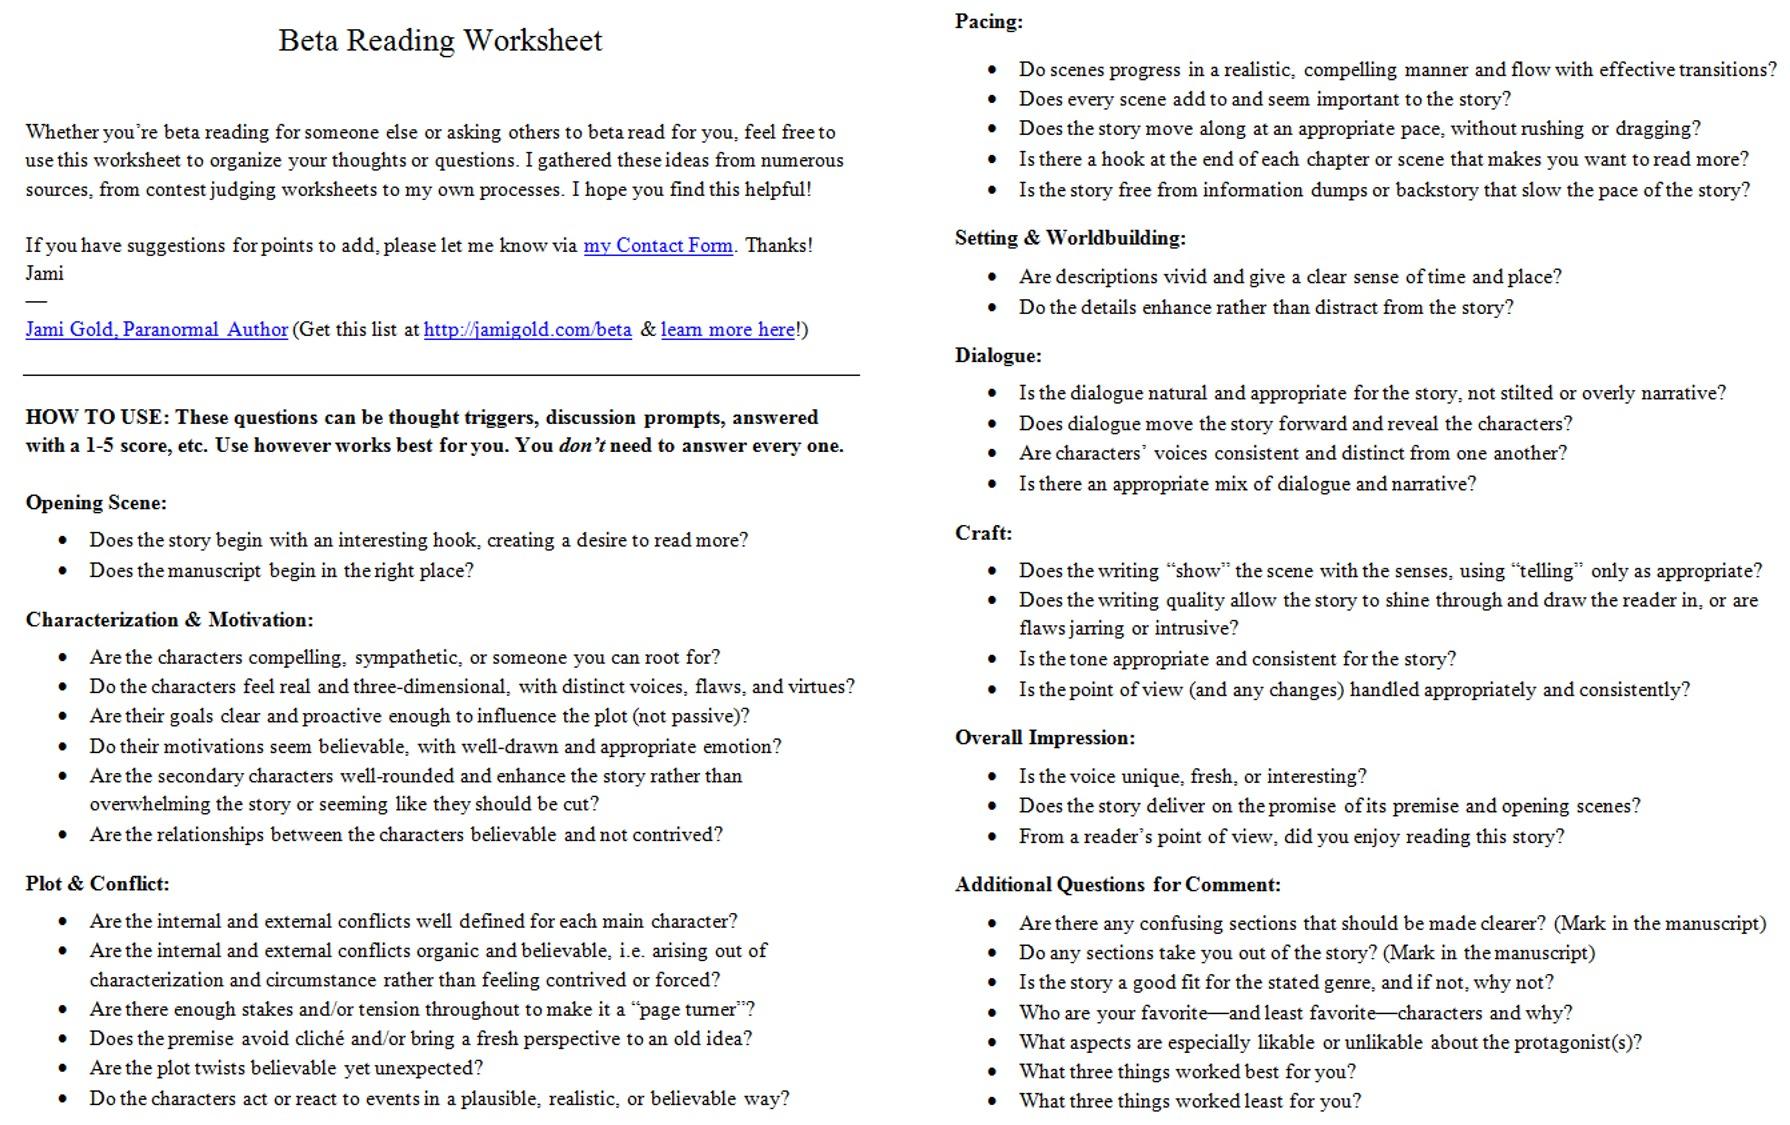 Proatmealus  Nice Worksheets For Writers  Jami Gold Paranormal Author With Engaging Screen Shot Of The Twopage Beta Reading Worksheet With Amazing Math Second Grade Worksheets Also Subtracting Mixed Numbers With Like Denominators Worksheet In Addition Algebra  Functions Worksheet And Th Grade Reading Comprehension Worksheets Free As Well As Area Worksheets For Rd Grade Additionally Complex Fractions Worksheets From Jamigoldcom With Proatmealus  Engaging Worksheets For Writers  Jami Gold Paranormal Author With Amazing Screen Shot Of The Twopage Beta Reading Worksheet And Nice Math Second Grade Worksheets Also Subtracting Mixed Numbers With Like Denominators Worksheet In Addition Algebra  Functions Worksheet From Jamigoldcom